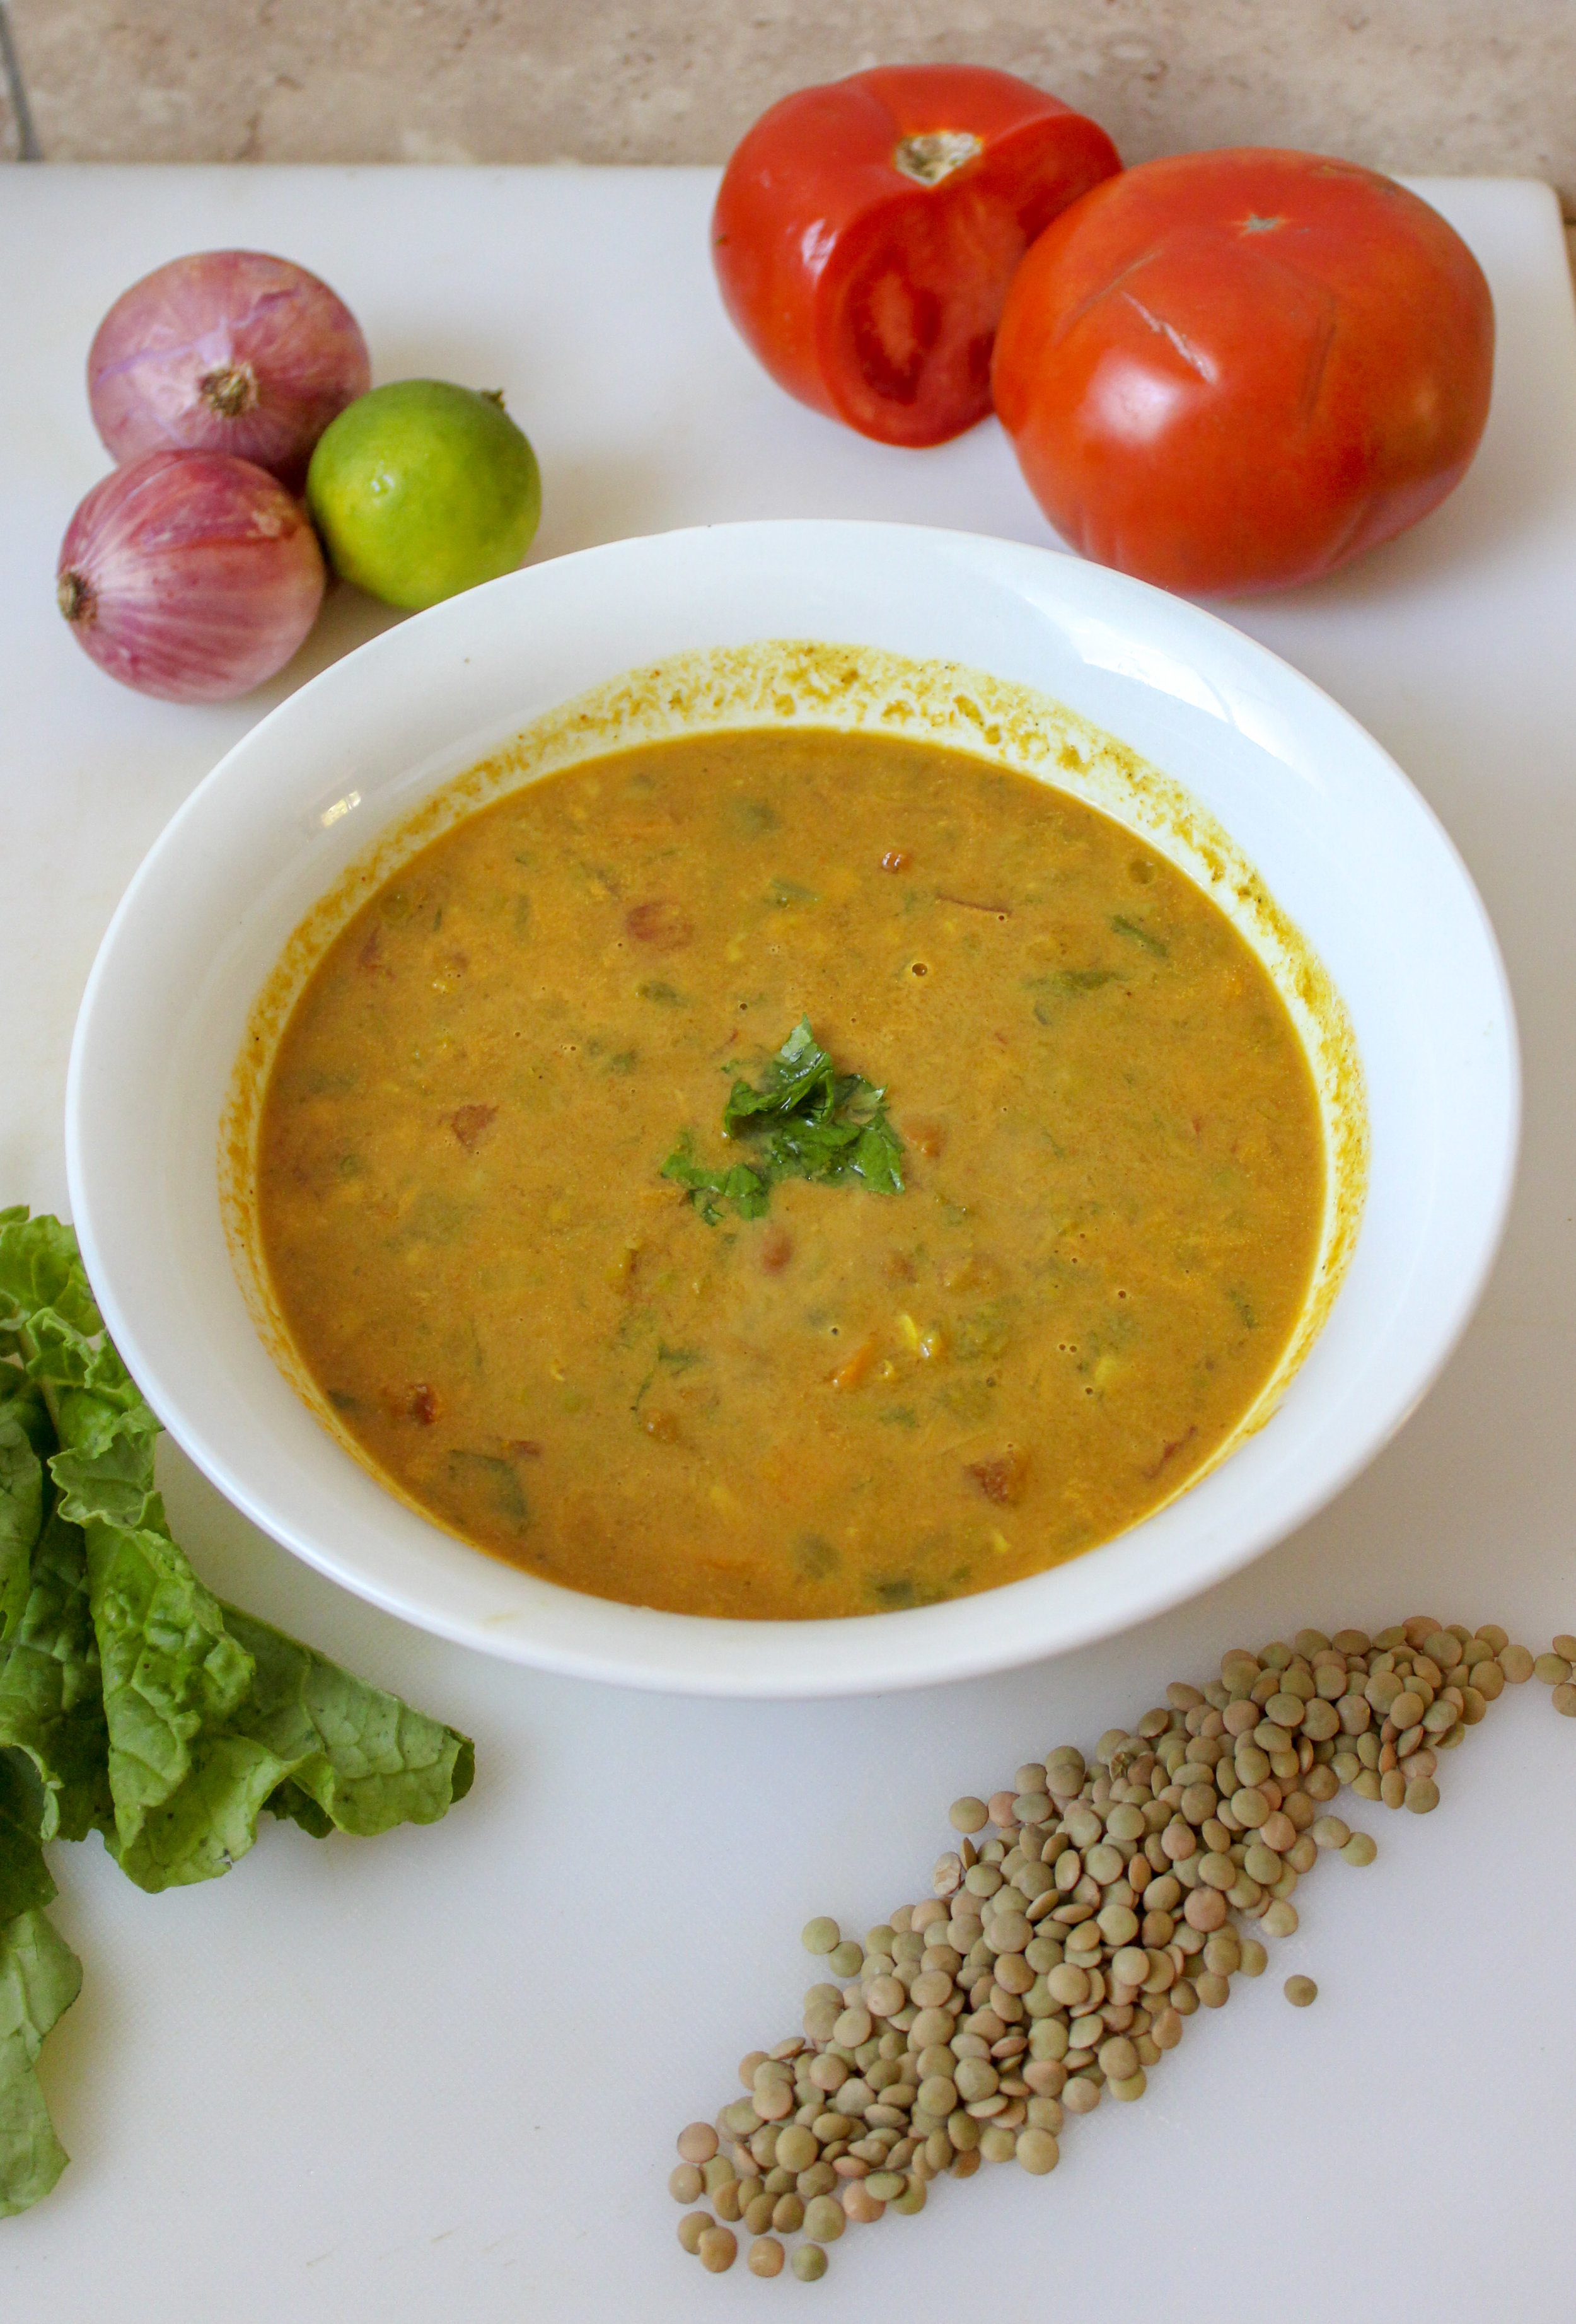 Creamy Coconut Curry Vegetable Soup. Full of lentils, red beans, coconut milk and vegetables. Healthy, gluten free and vegan. Delicious easy and quick soup. #vegan #vegansoup #curry #quick #easy www.mariamusicmunchies.com